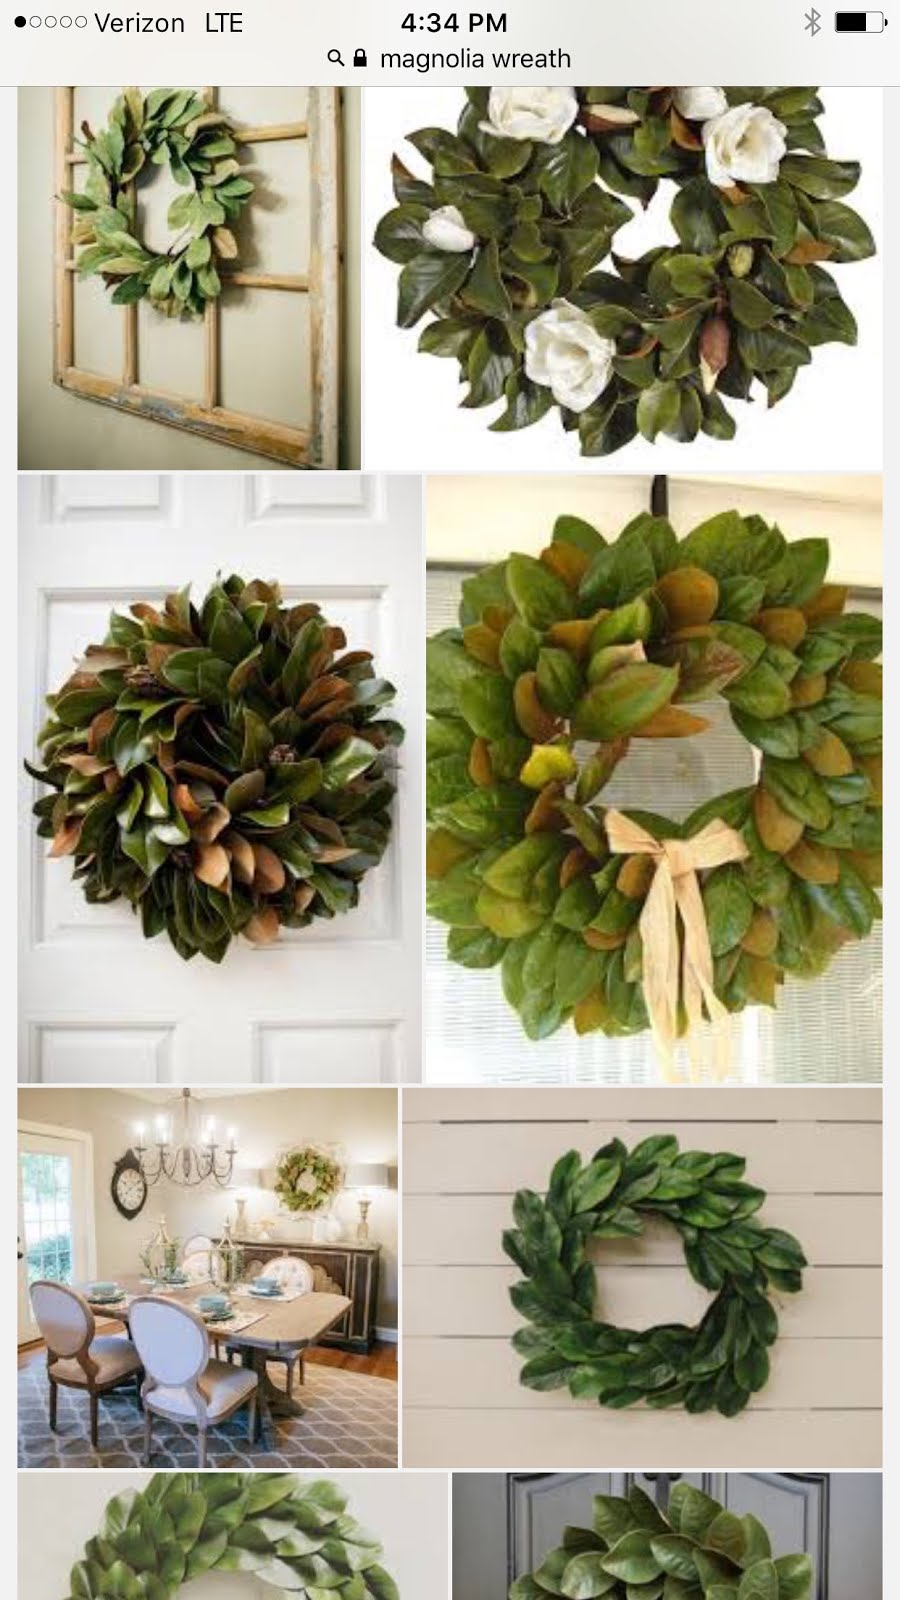 after visiting my local craft store to search for some basement decor i came across some pretty real looking silk magnolia leaves and an idea popped in my